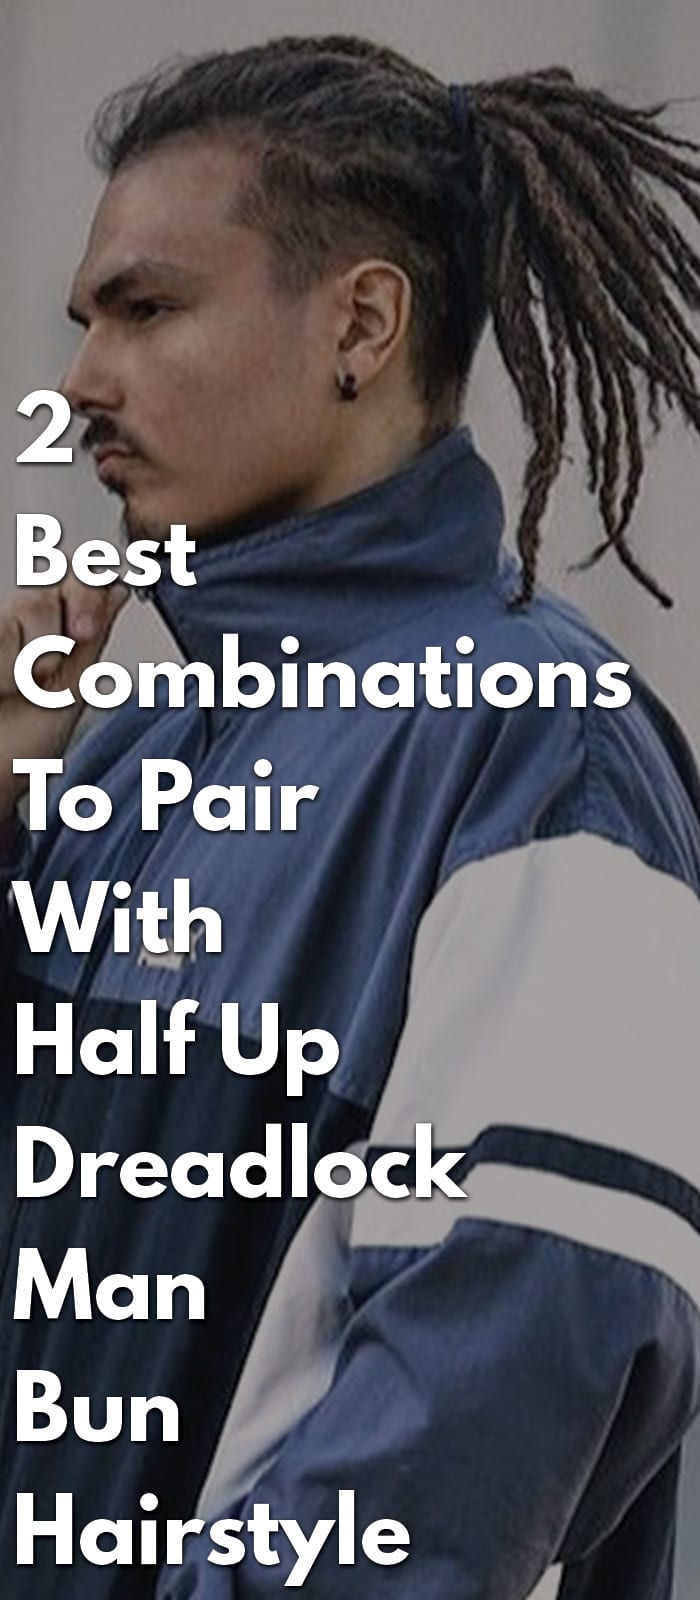 2 Best Combinations To Pair With Half Up Dreadlock Man Bun Hairstyle